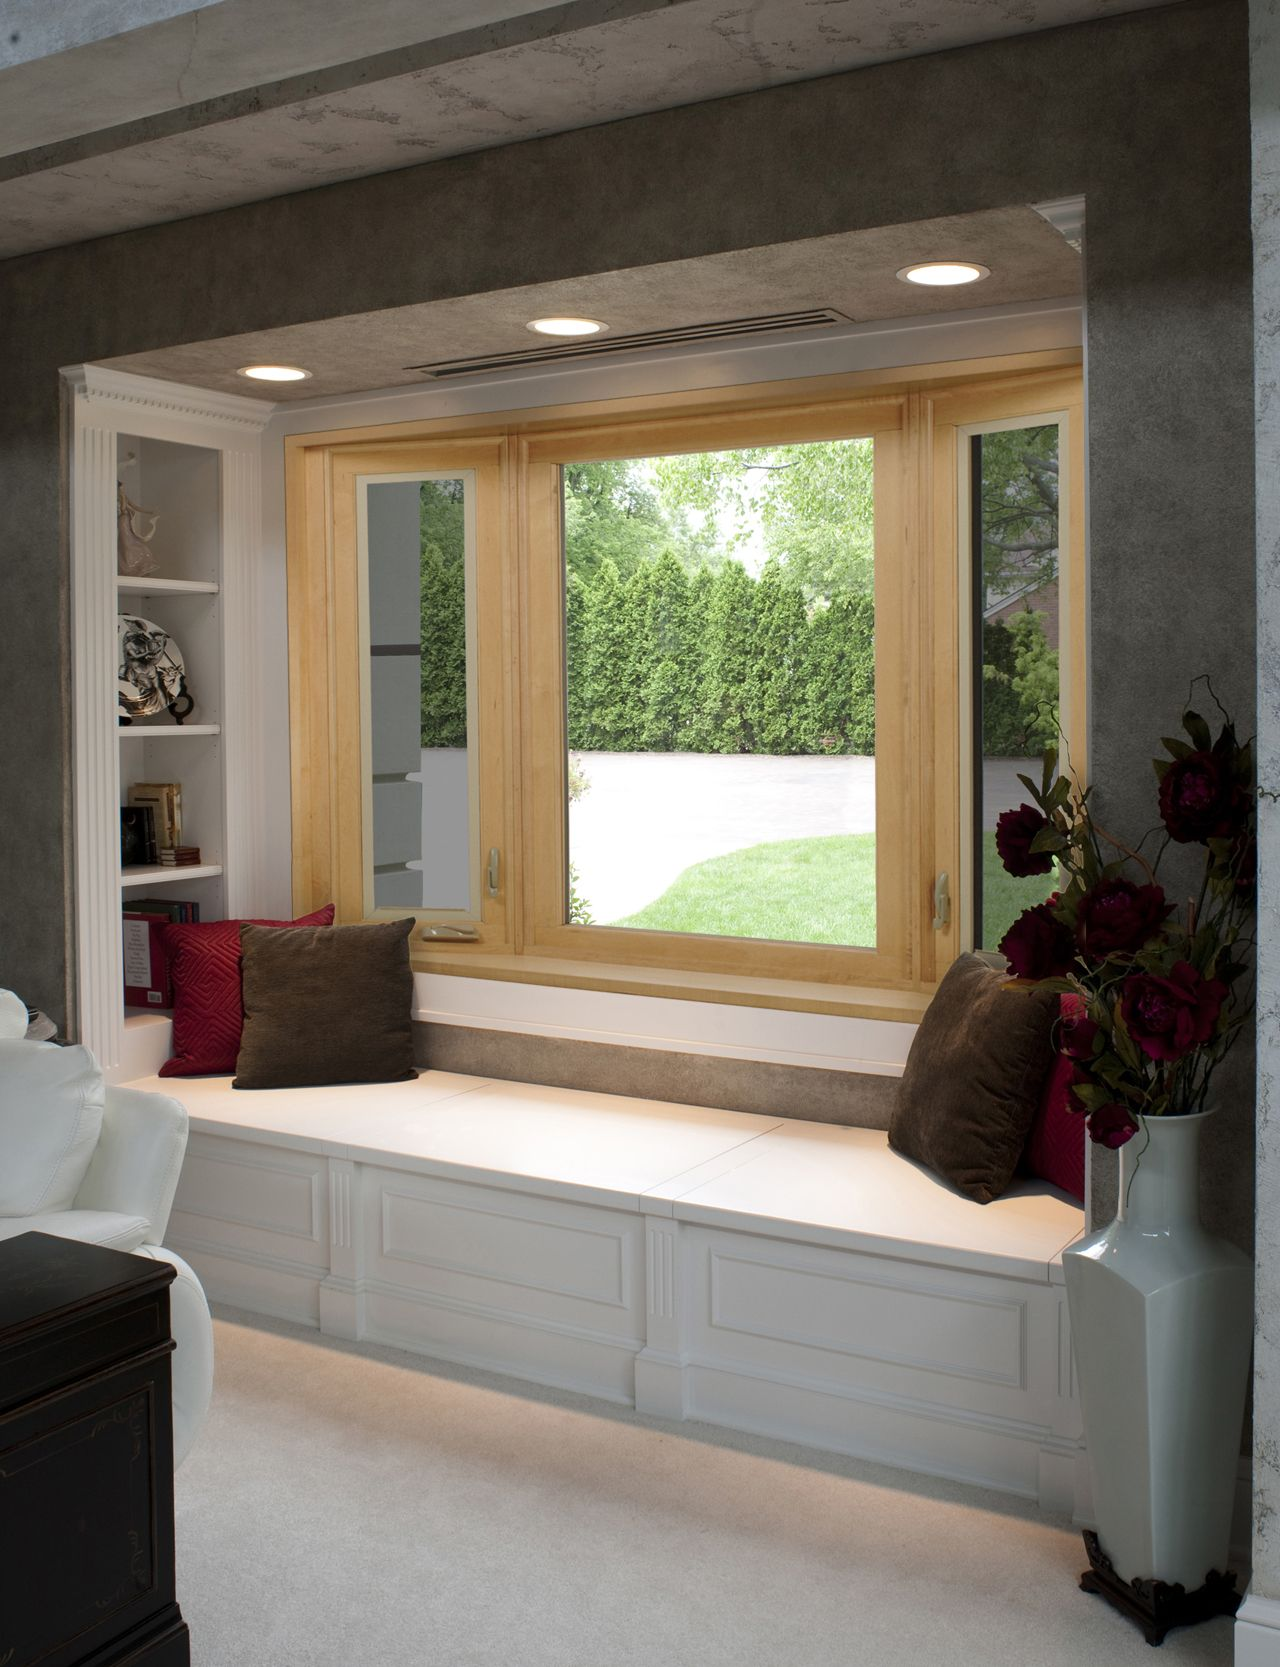 Kitchen bay window exterior  a bay window by provia with a prefinished real wood interior will